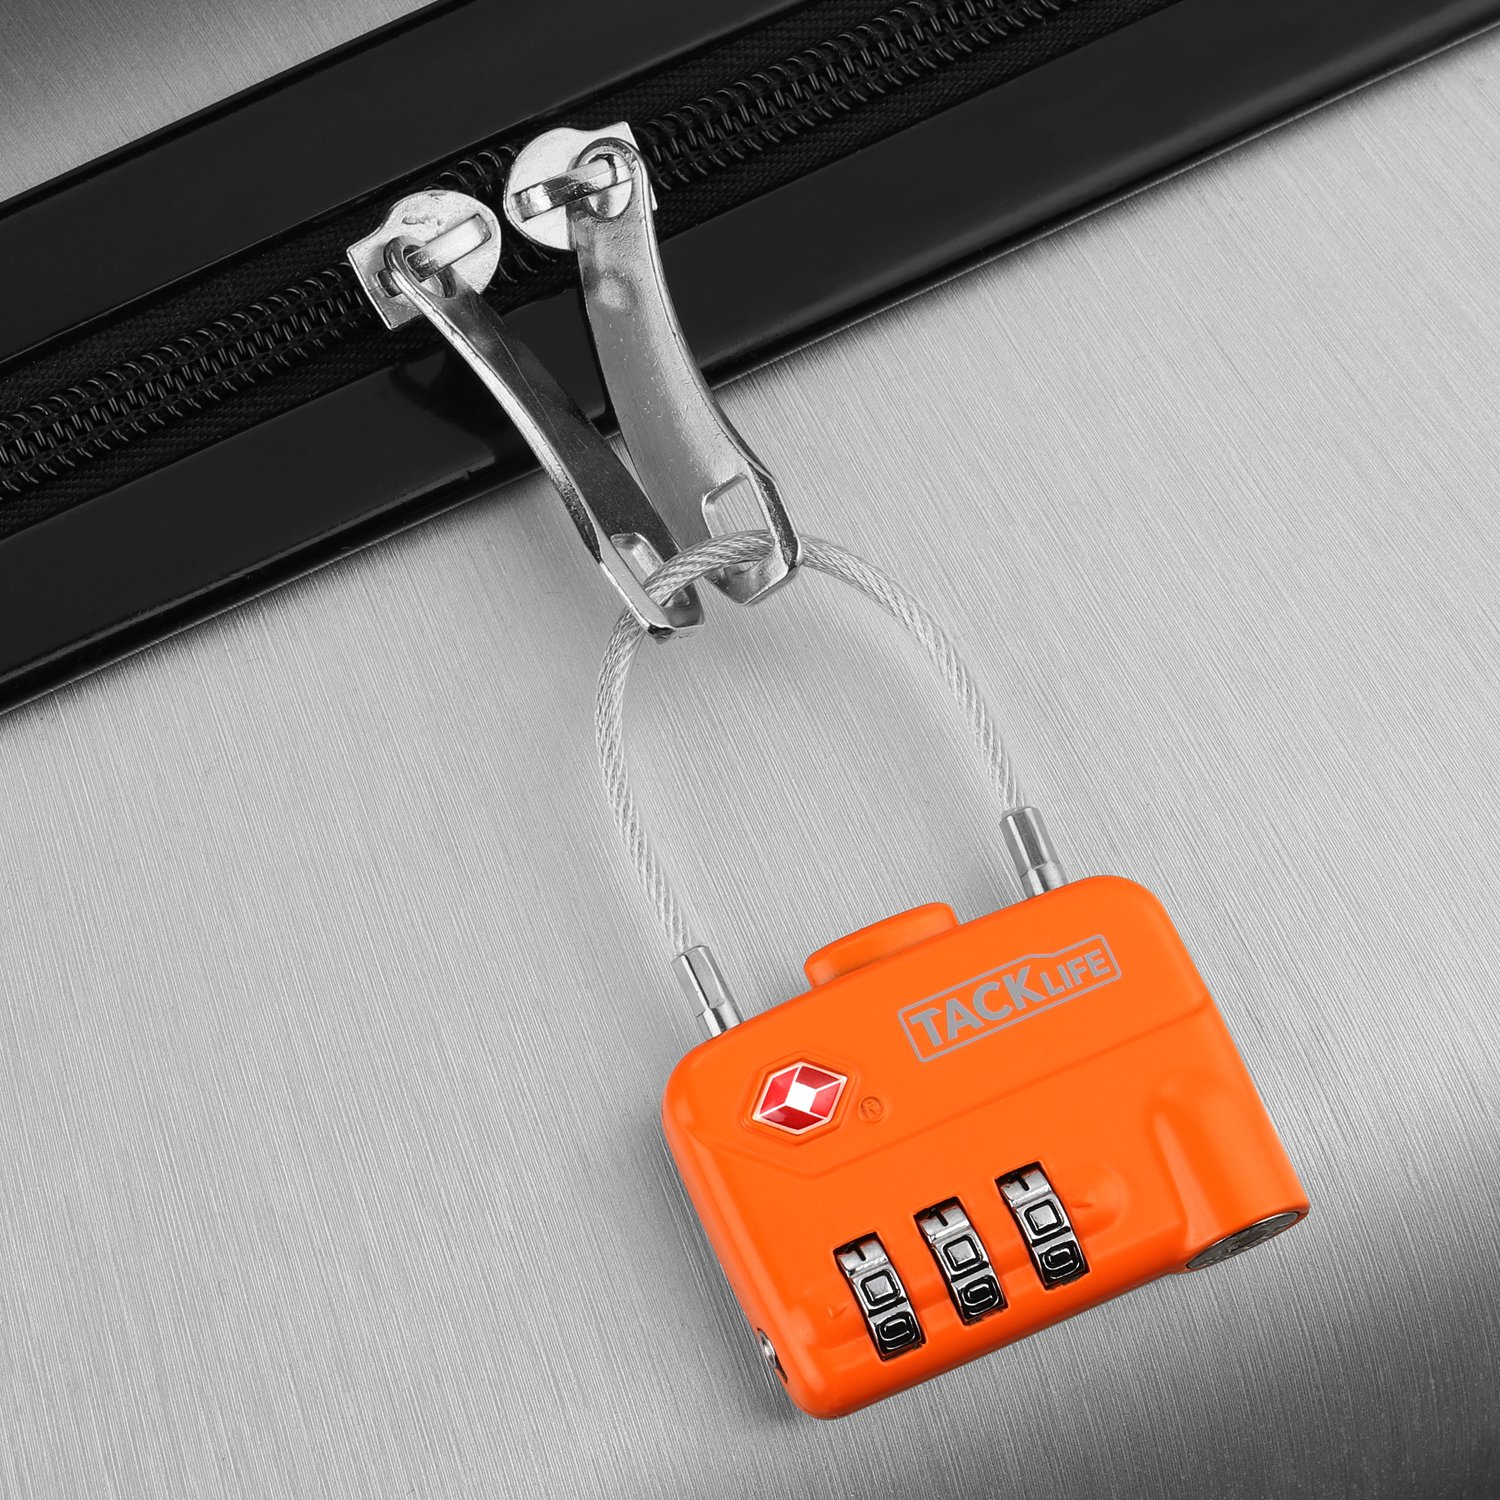 Luggage Locks, TACKLIFE HCL1A Cable Locks, TSA Approved Travel Locks, Flexible Locks, 3Digit Combination Locks for Gym, School, Locker, Outdoor, Fence, Suitcase & Baggage - Orange by TACKLIFE (Image #5)